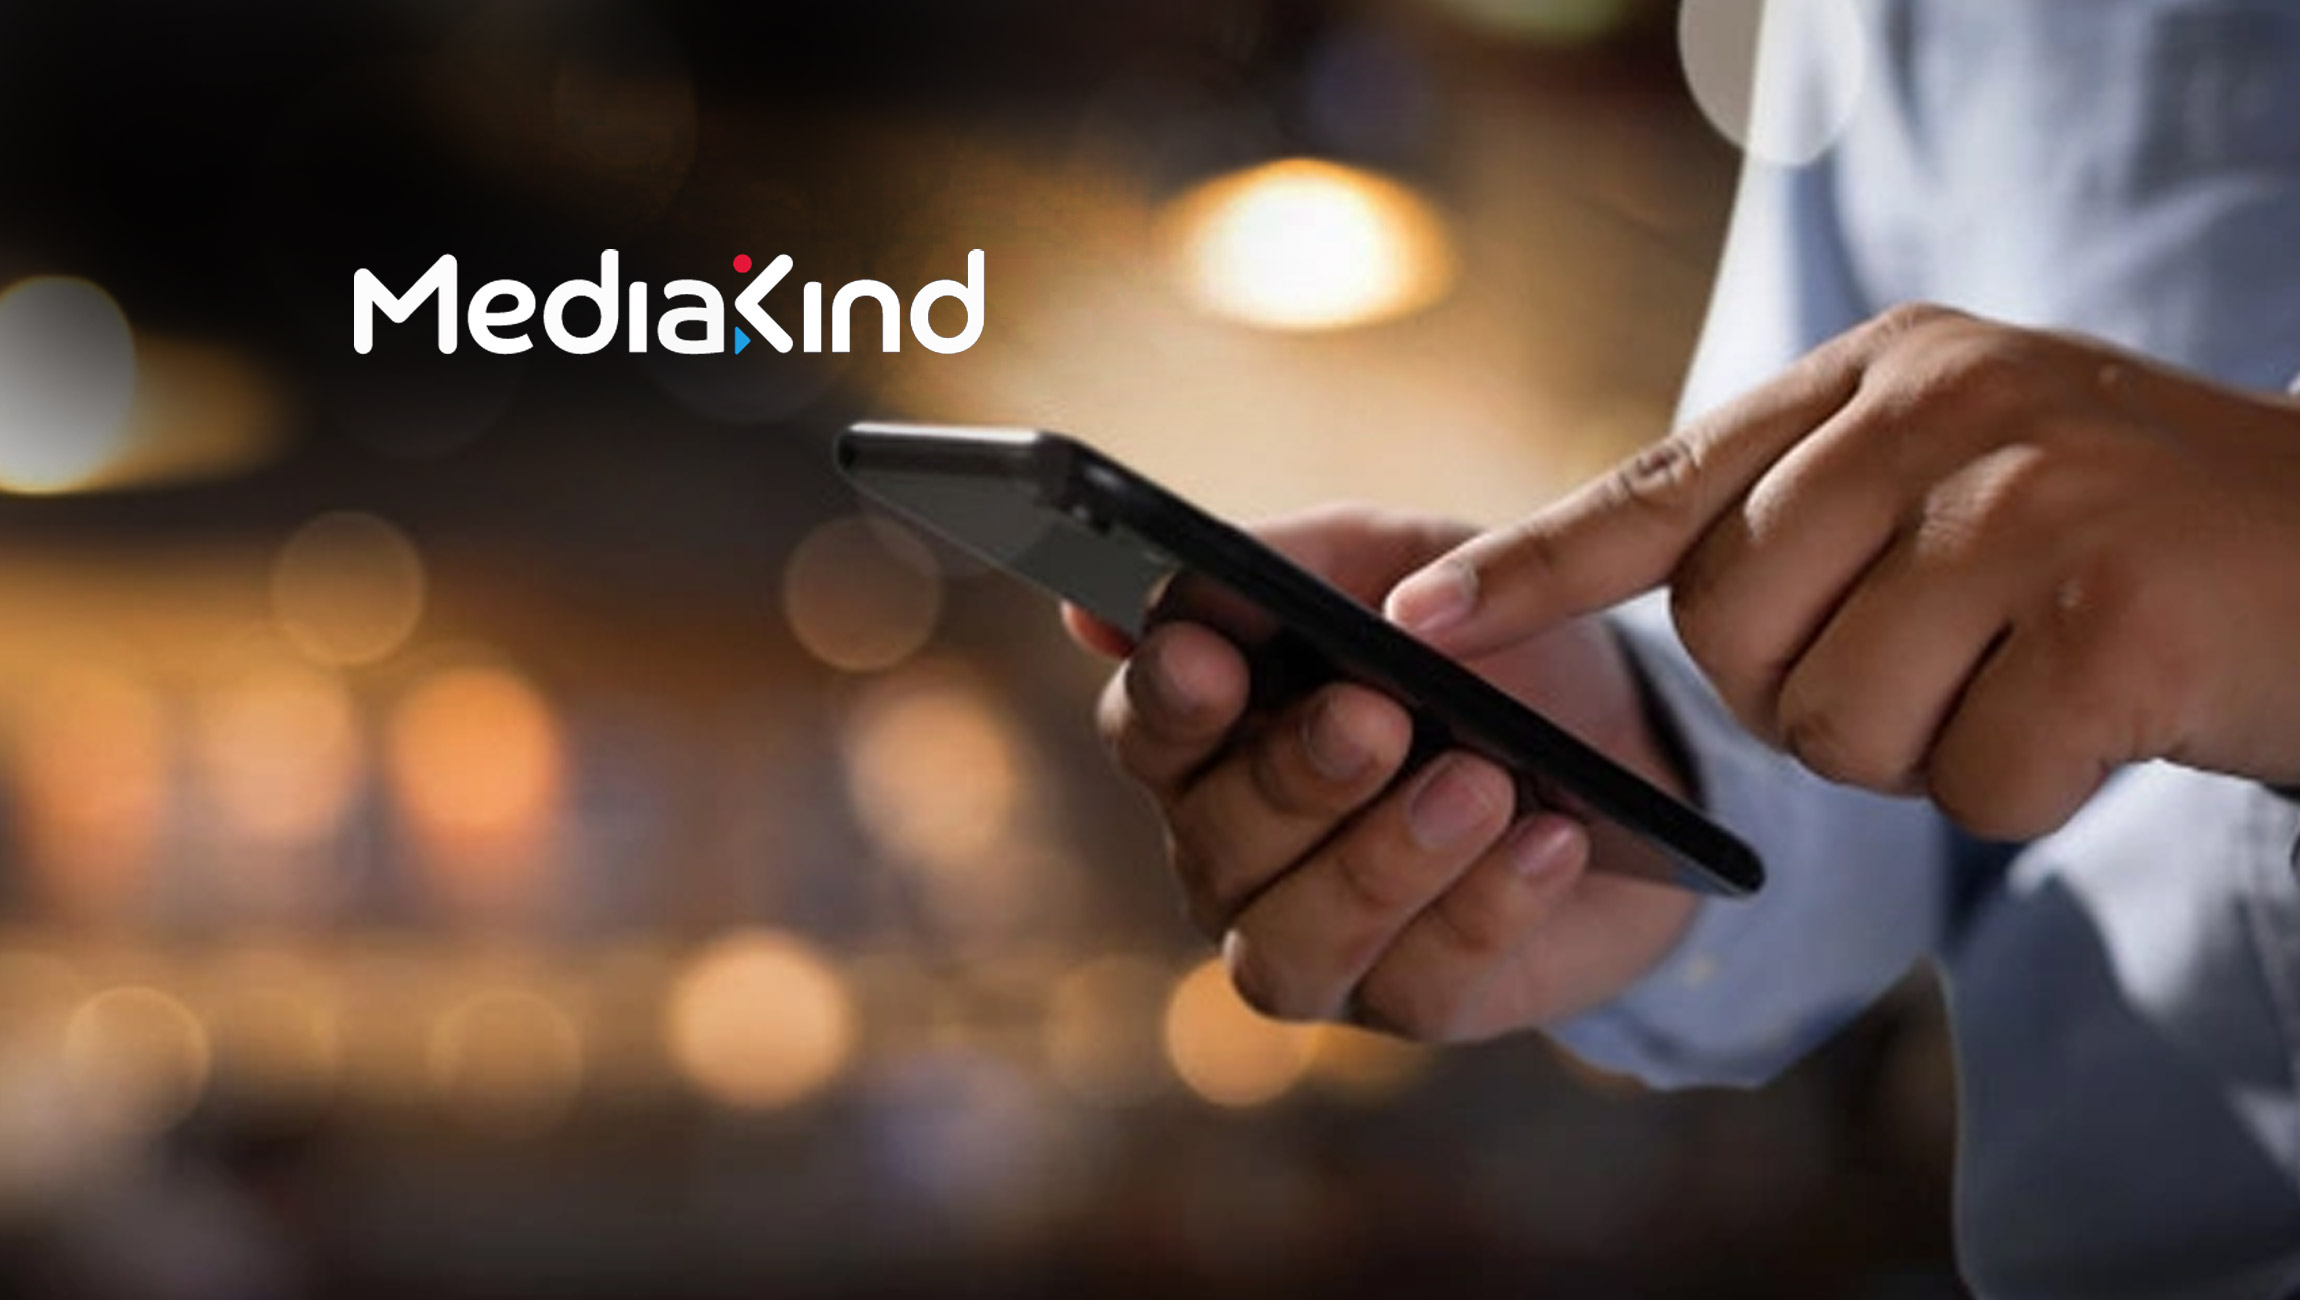 Telefónica Selects MediaKind's Aquila On-Demand Solution to Enhance Movistar+ VoD Experience 1